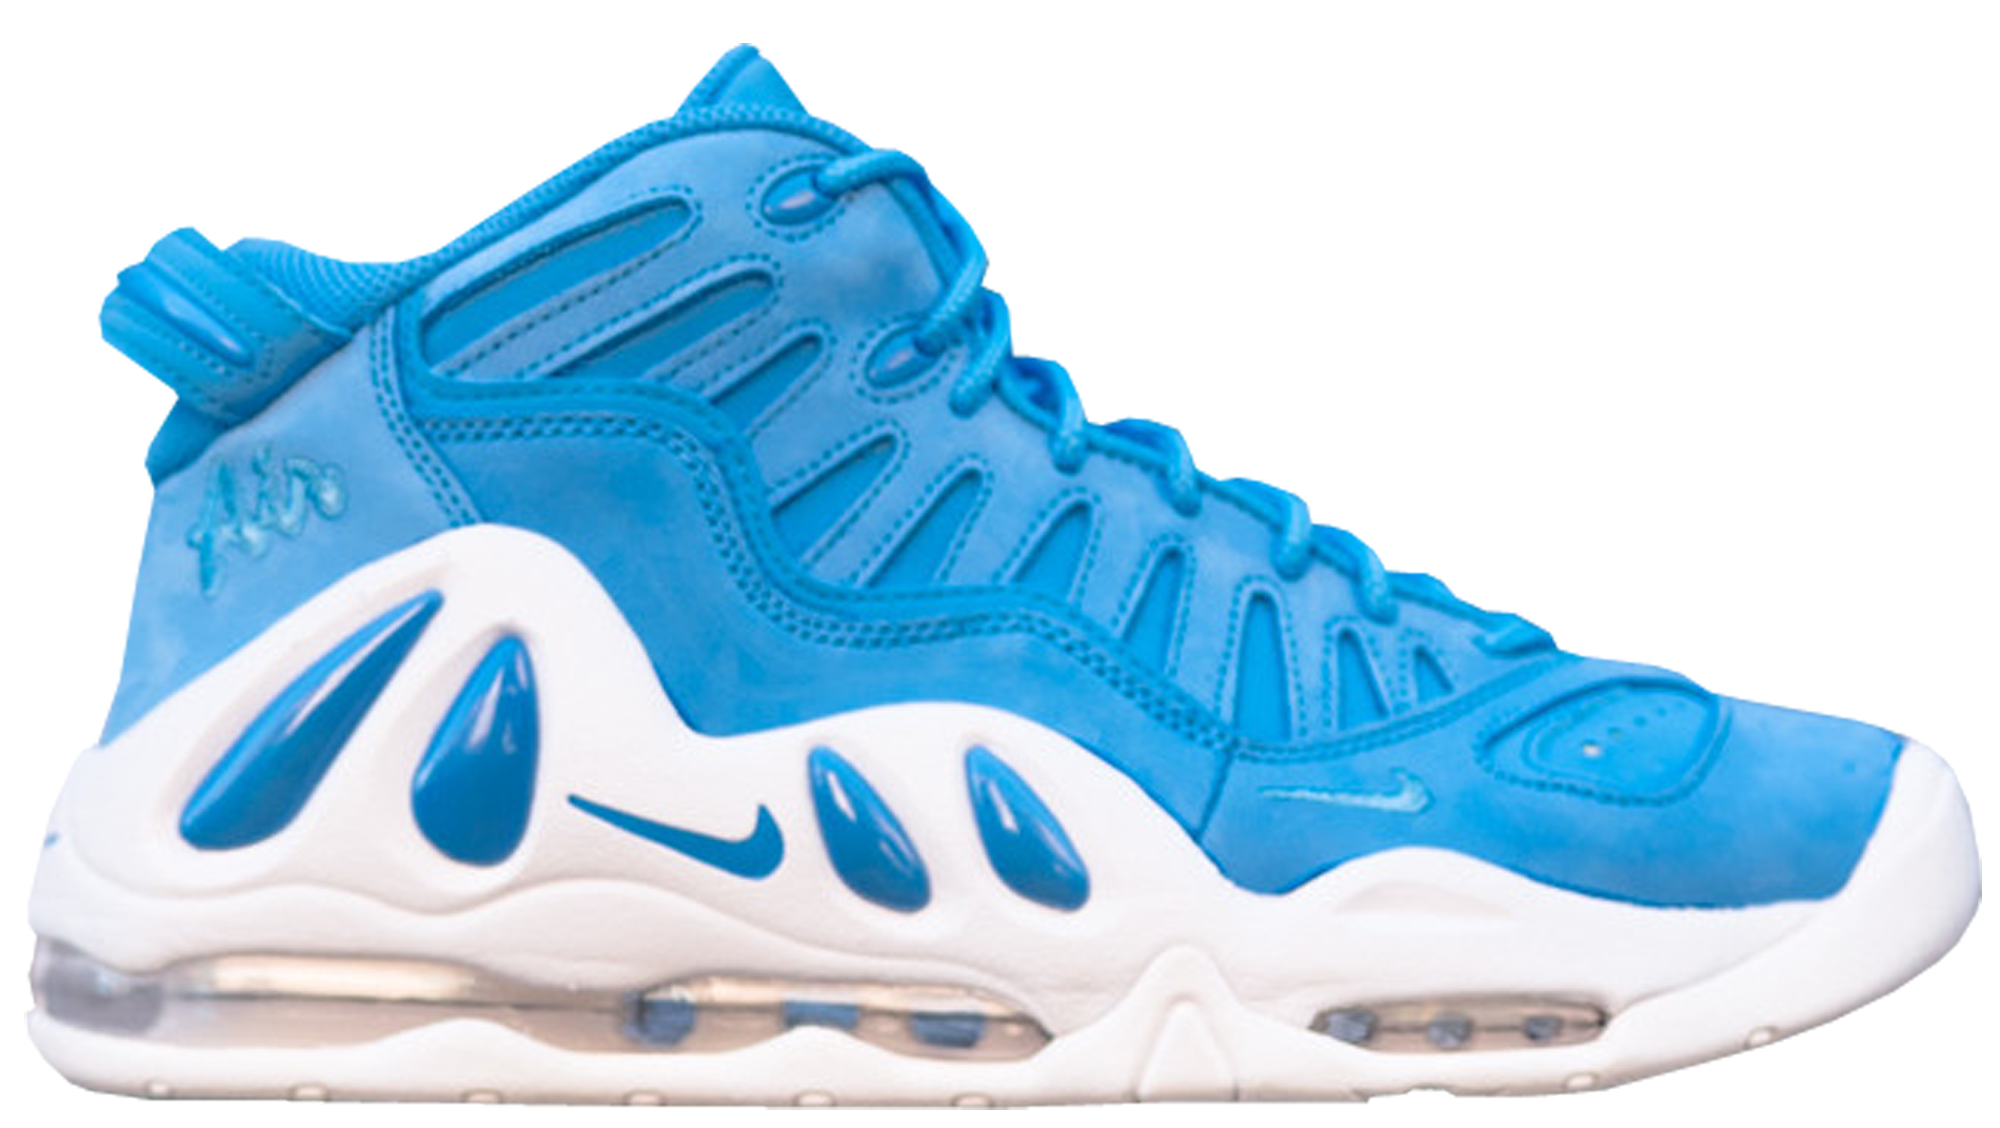 Nike Air Max Uptempo All Star Pack